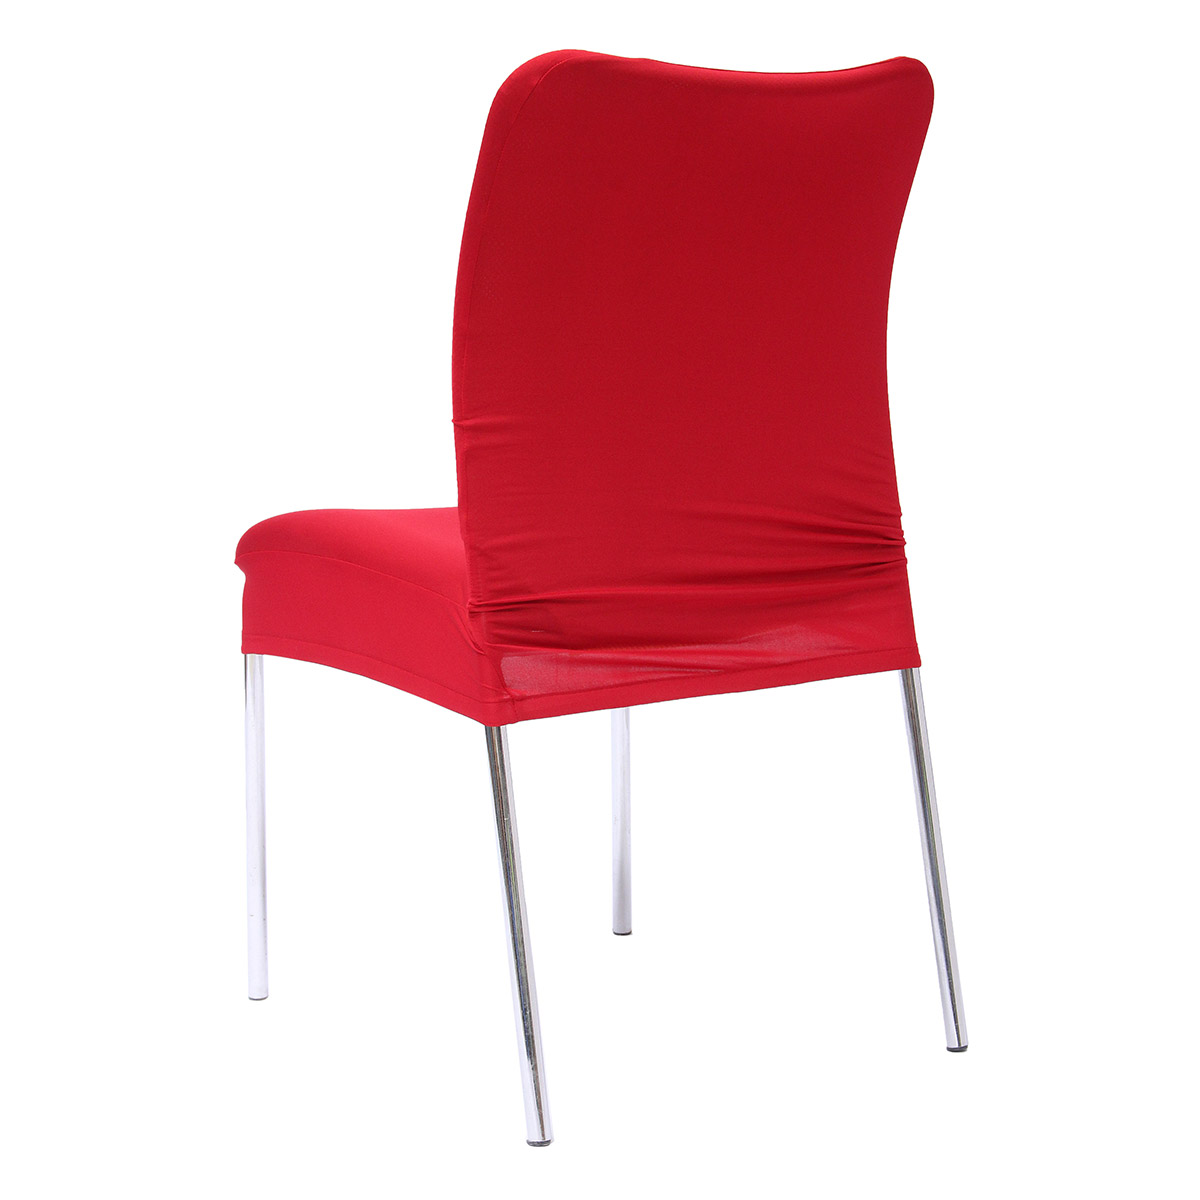 Stretch Soft Stool Seat Chair Cover Removable Dining Room  : 2b491396 a62a 44ca ad72 2597202f7442 from www.lazada.com.my size 1200 x 1200 jpeg 92kB